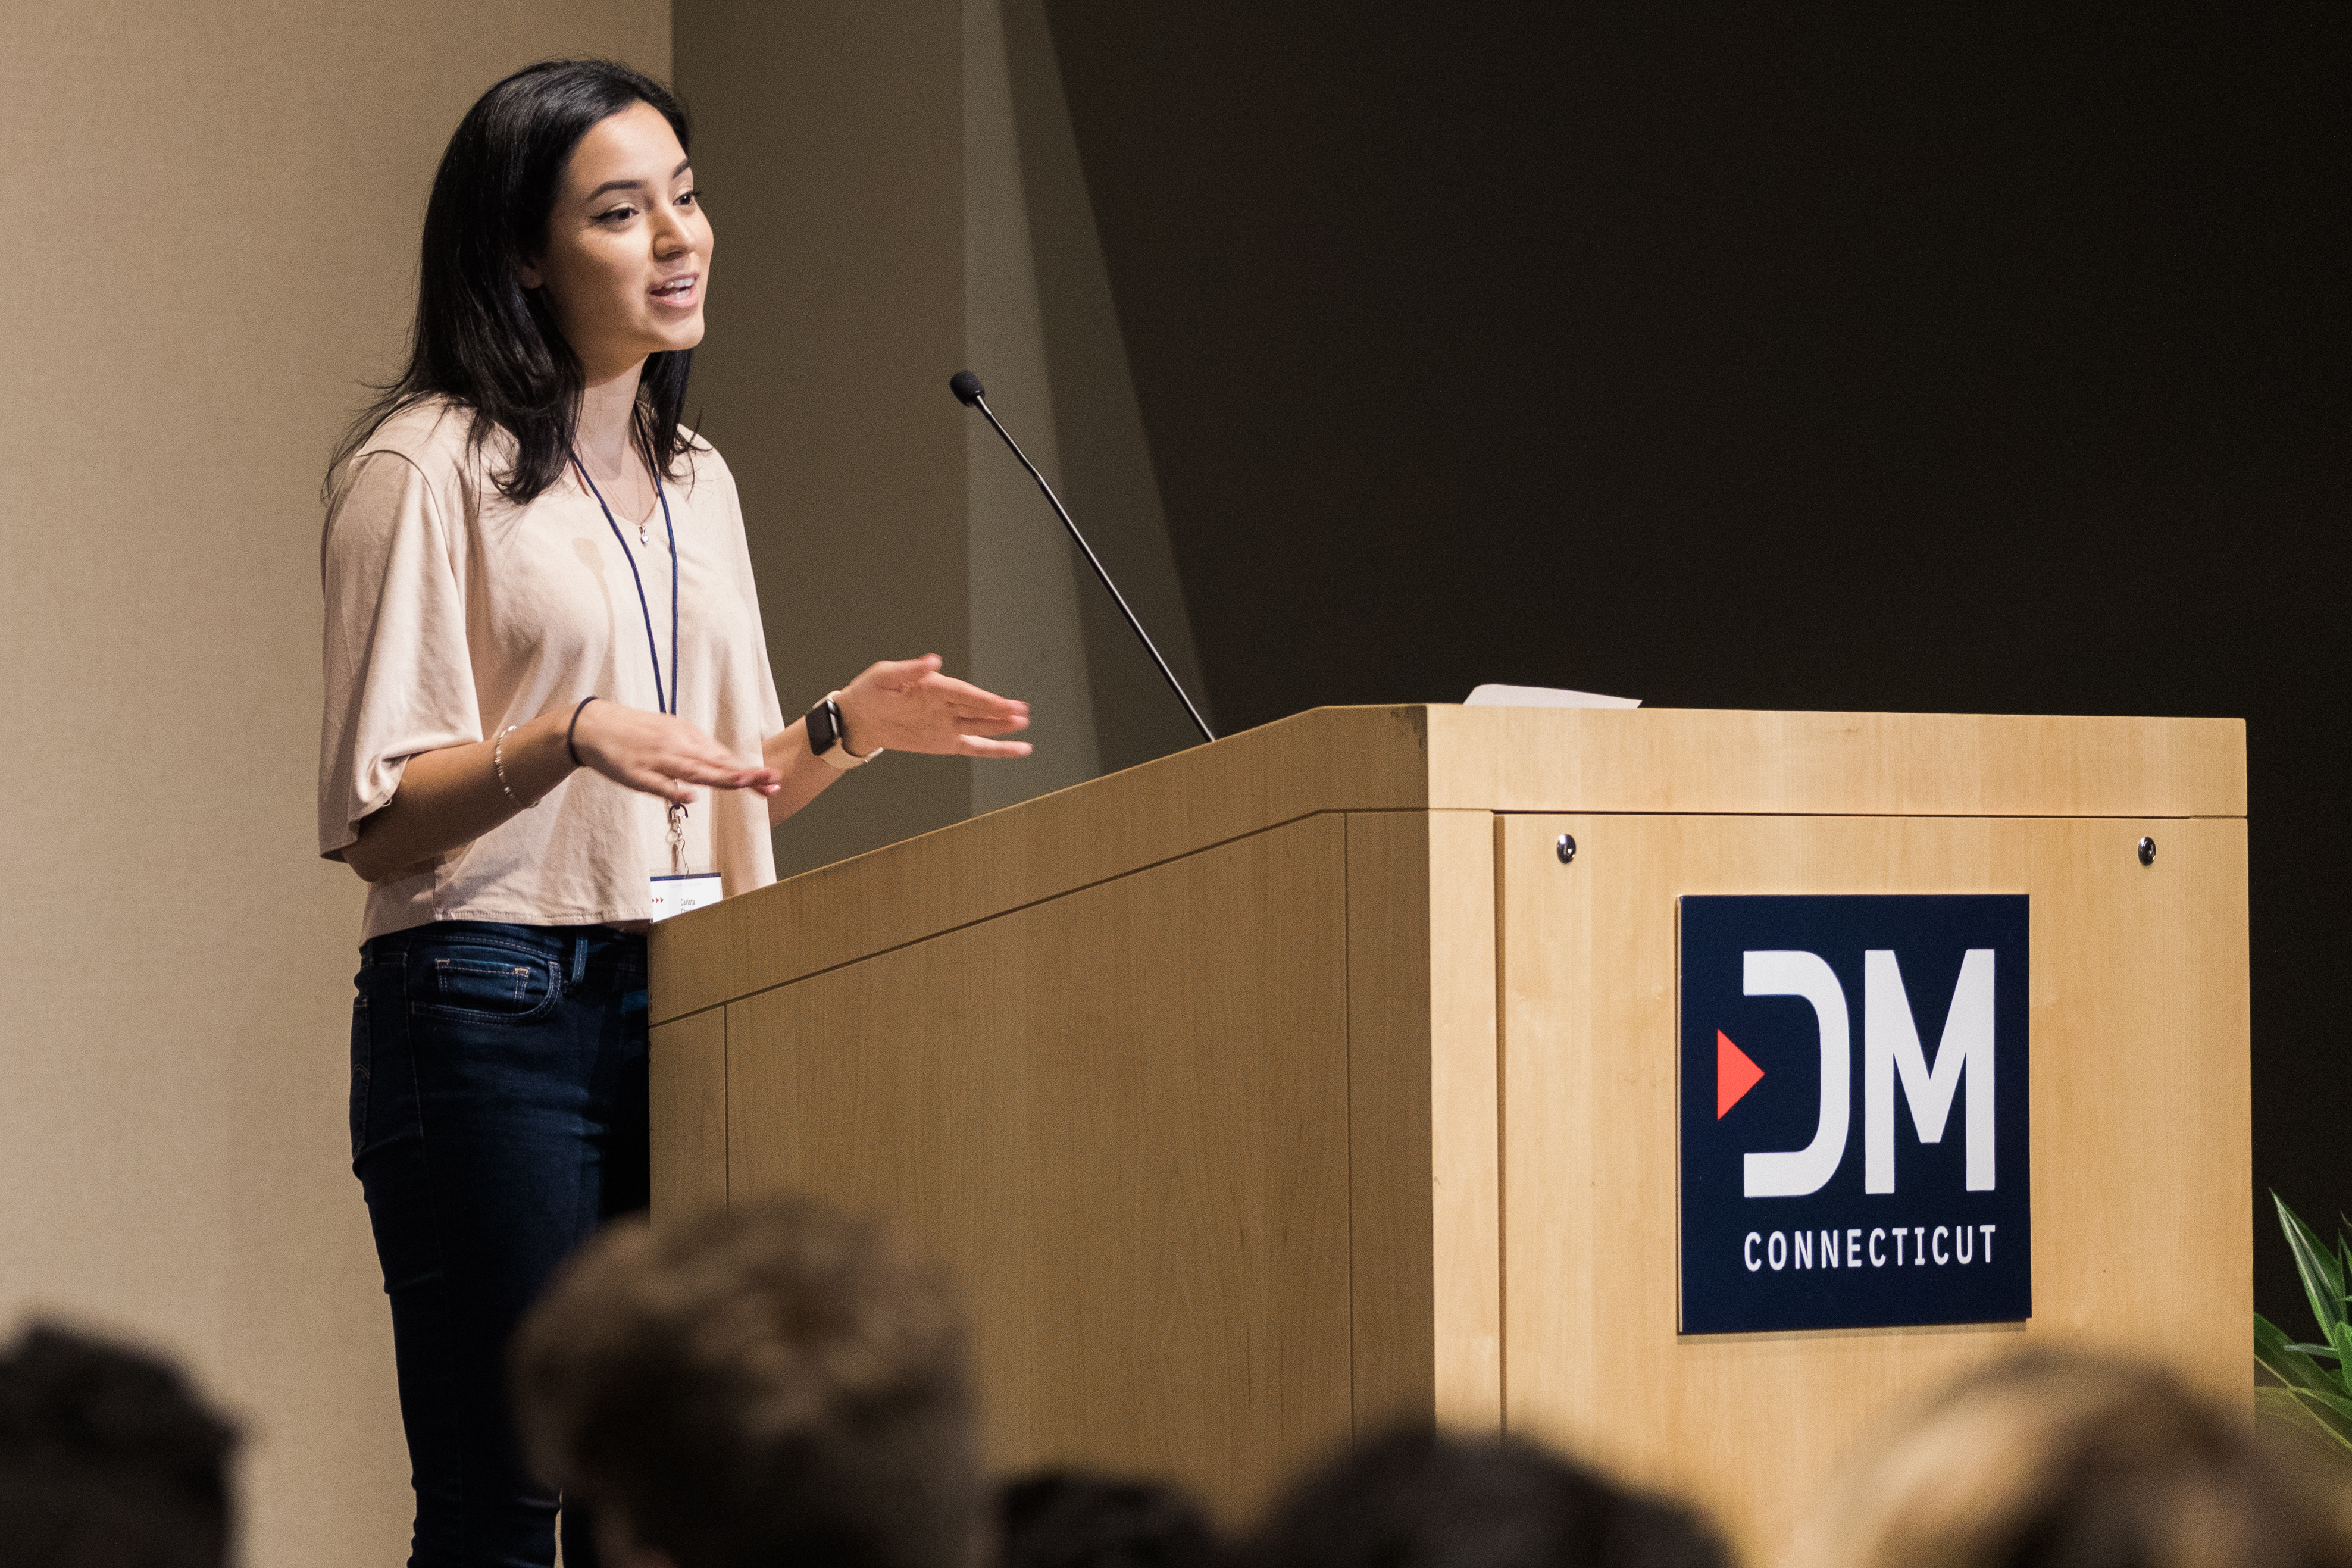 Carlotta Charles, user interface/user experience (UI/UX) designer with Cigna Health, spoke to students, faculty and industry professionals during the Digital Media CT Summit held at UConn's Stamford campus. (Cat Boyce SFA '15, '19/ UConn Photo)